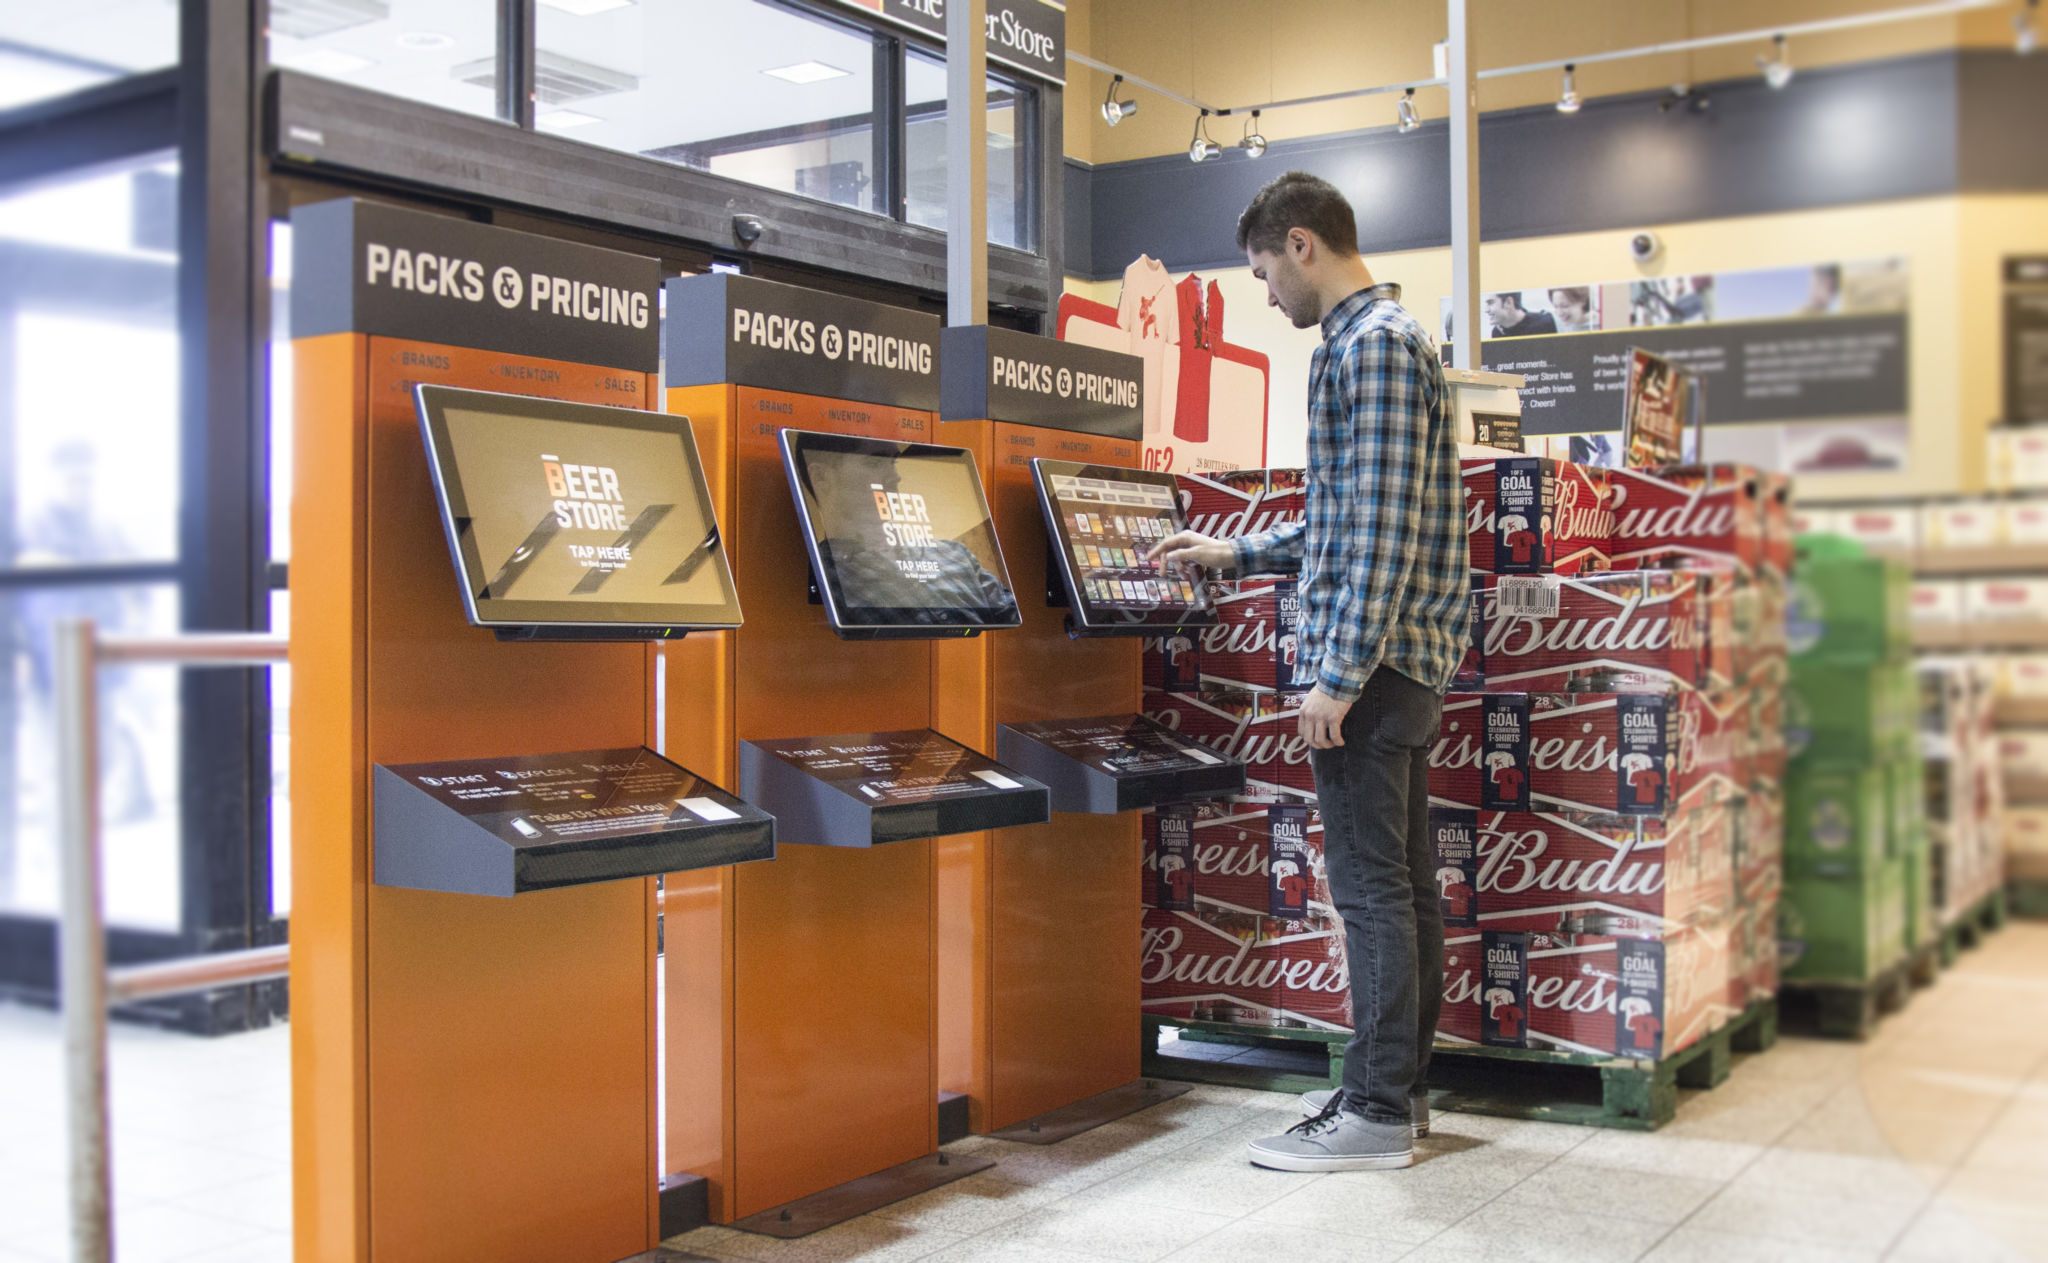 Beer Store replaces static displays with interactive ...